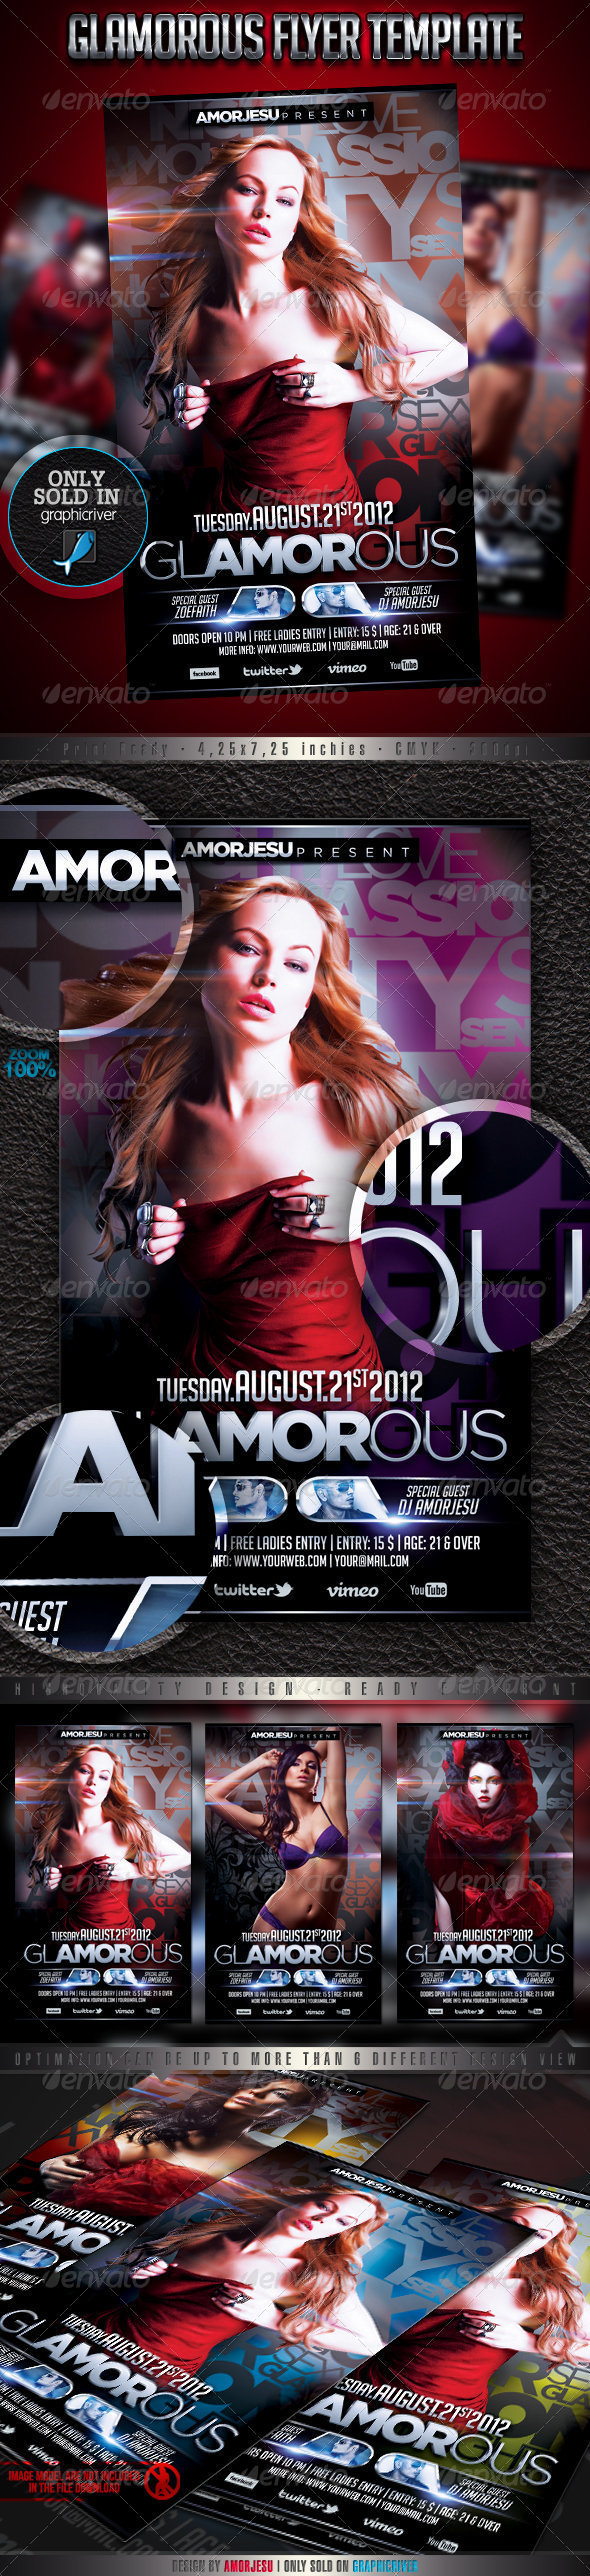 Glamorous Flyer Template - Events Flyers